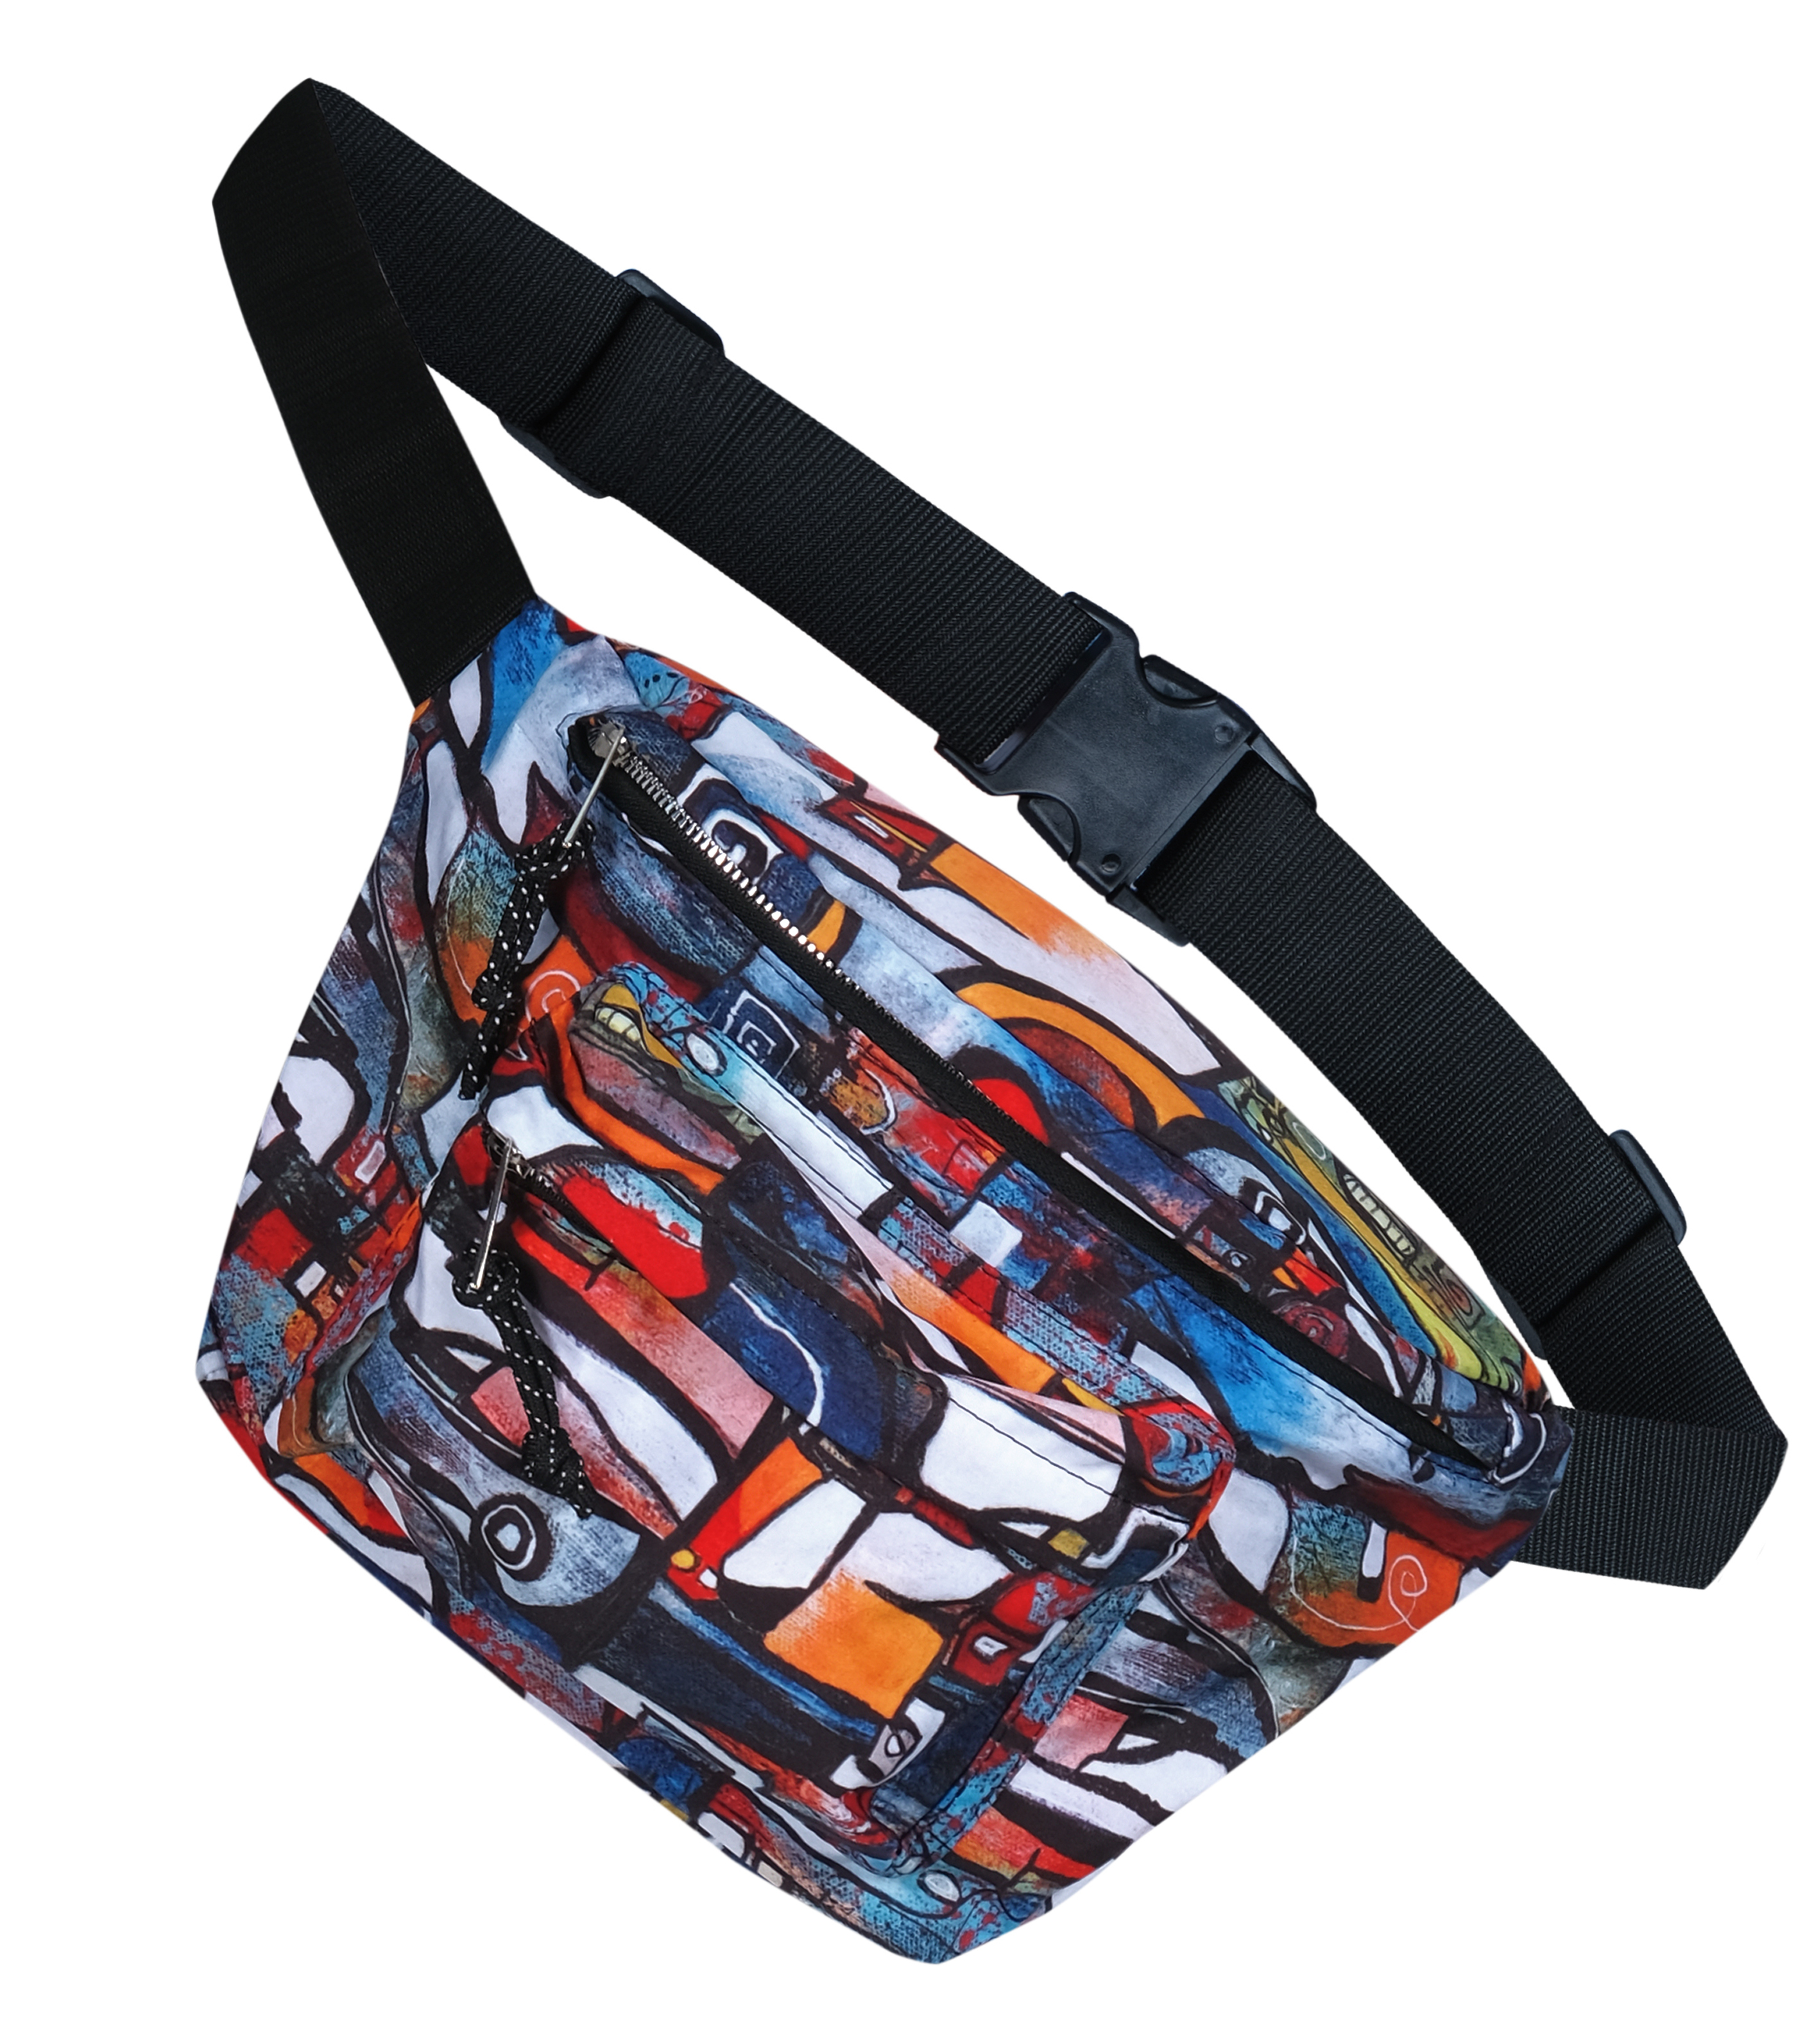 Simply Art Dolcezza: It's Complicated Crazy Cool Abstract Art Belt Bag Dolcezza_Simplyart_21971